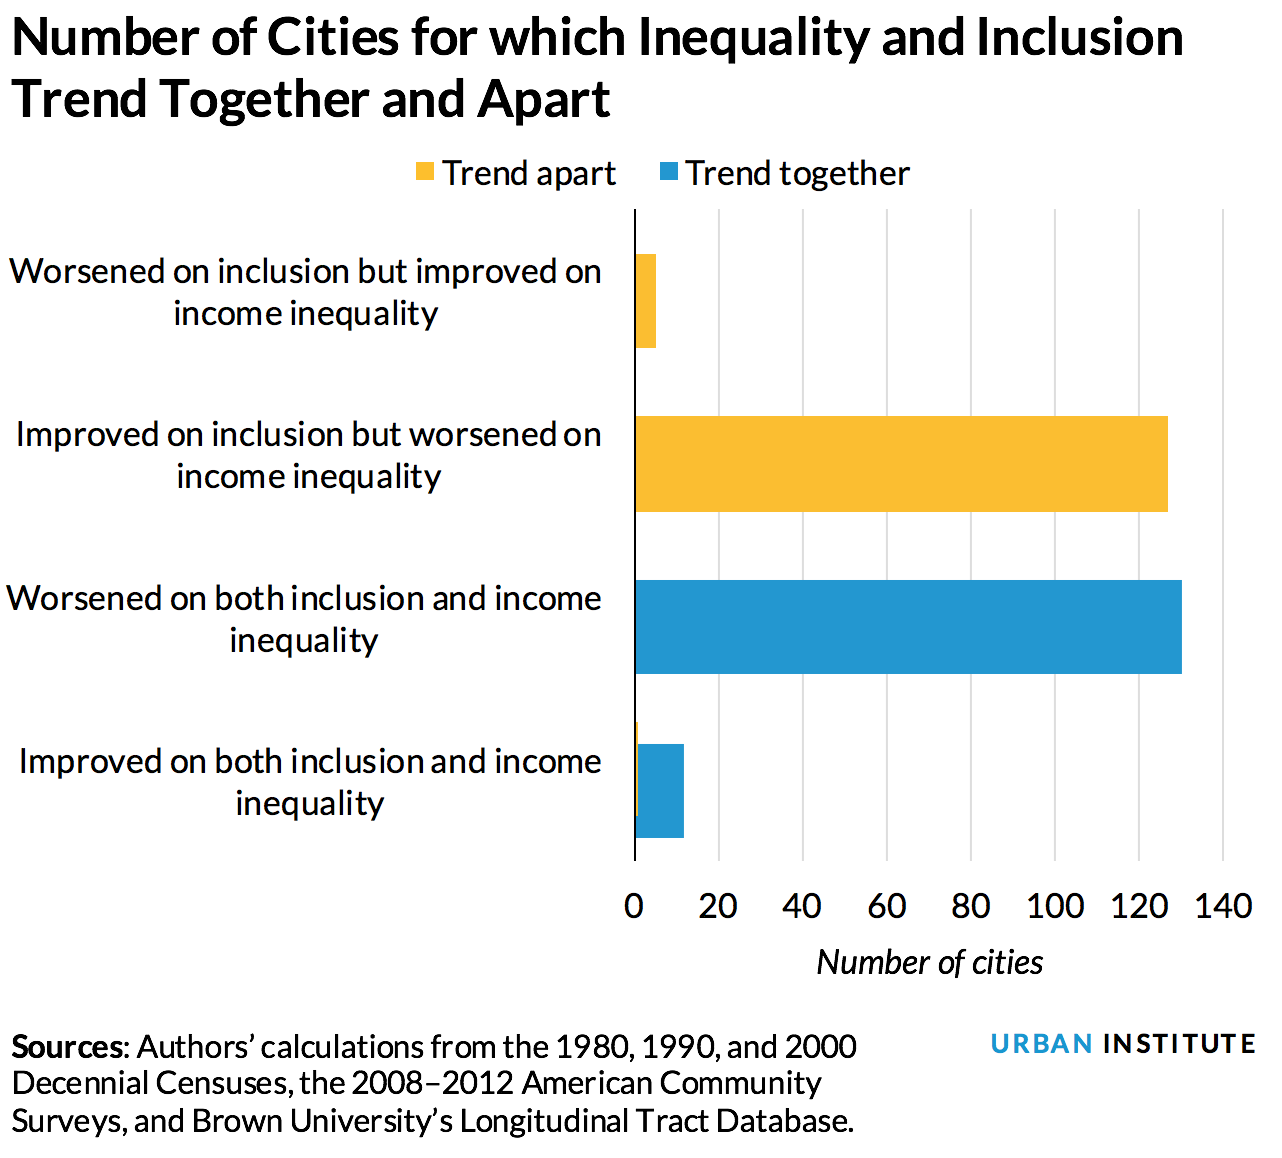 Number of Cities for which Inequality and Inclusion Trend Together and Apart